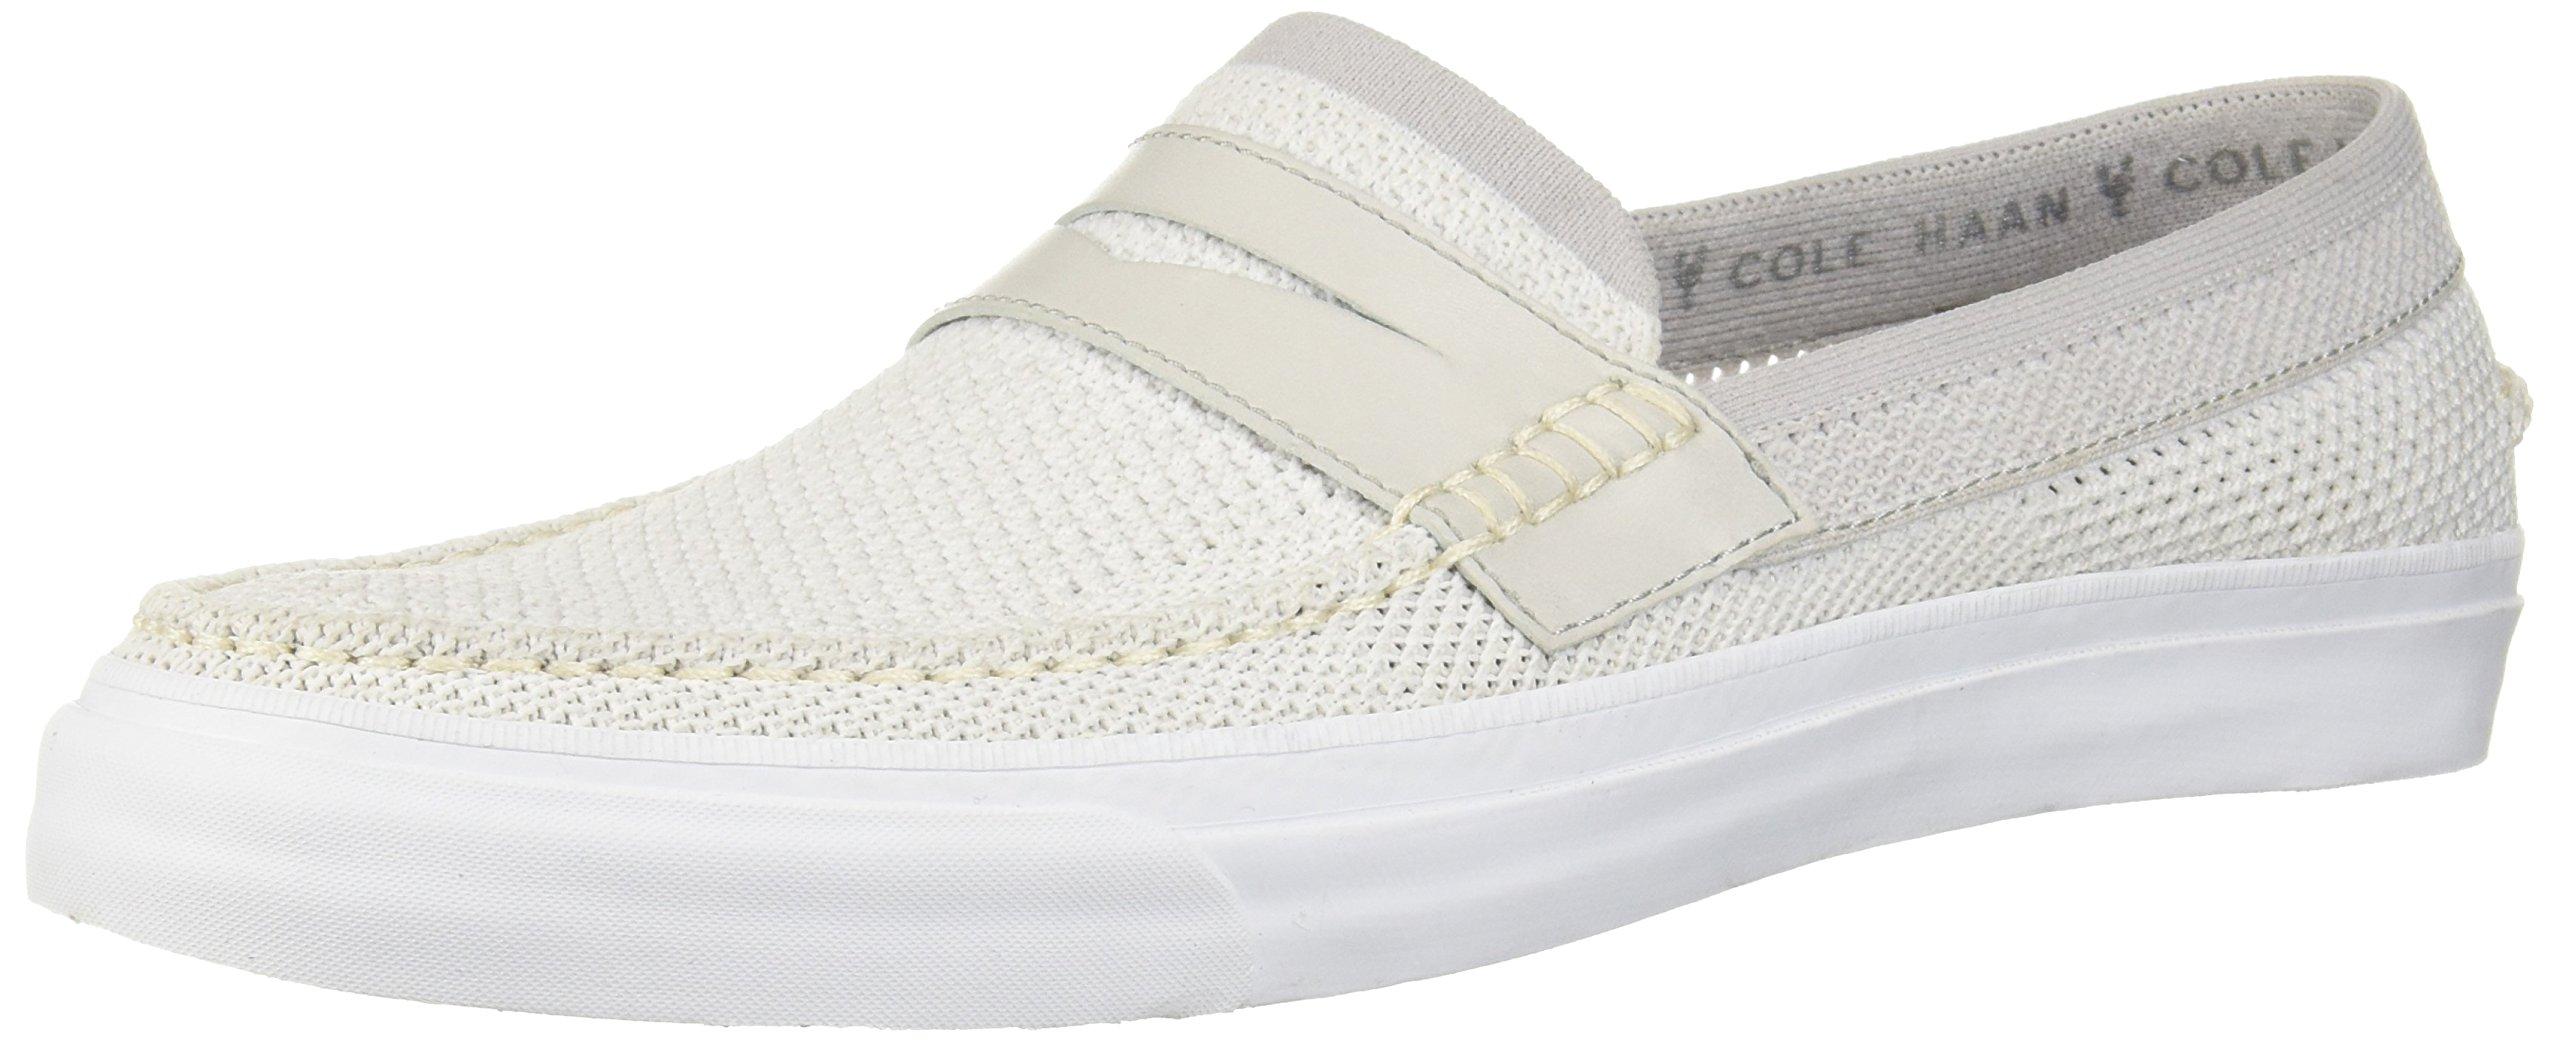 9e46e3f57bf Galleon - Cole Haan Men s Pinch Weekender LX Stitchlite Penny Loafer Vapor  Gray Optic Whte 8.5 M US